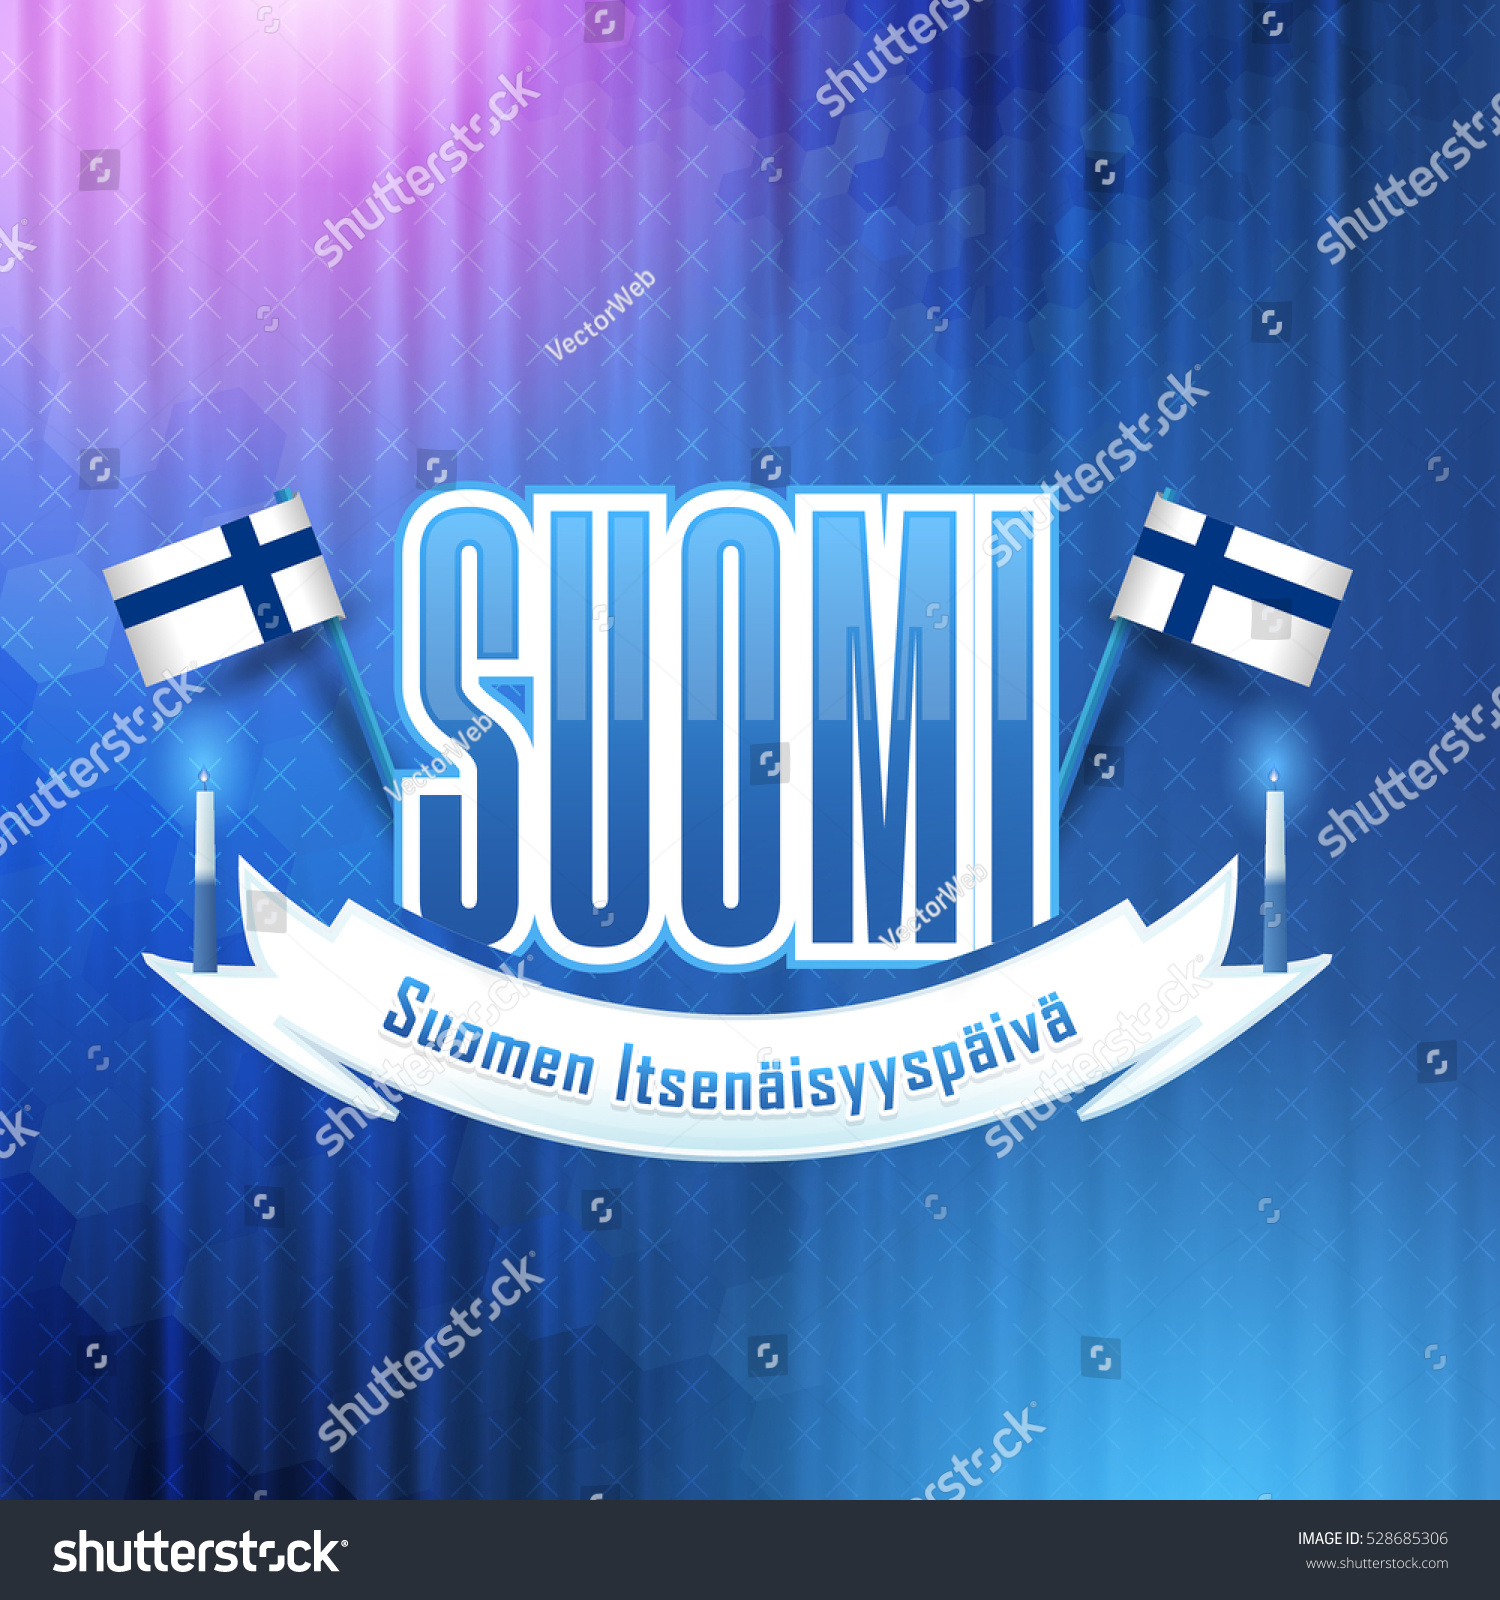 Republic Finland Independence Day Low Poly Stock Vector 528685306 - Shutterstock